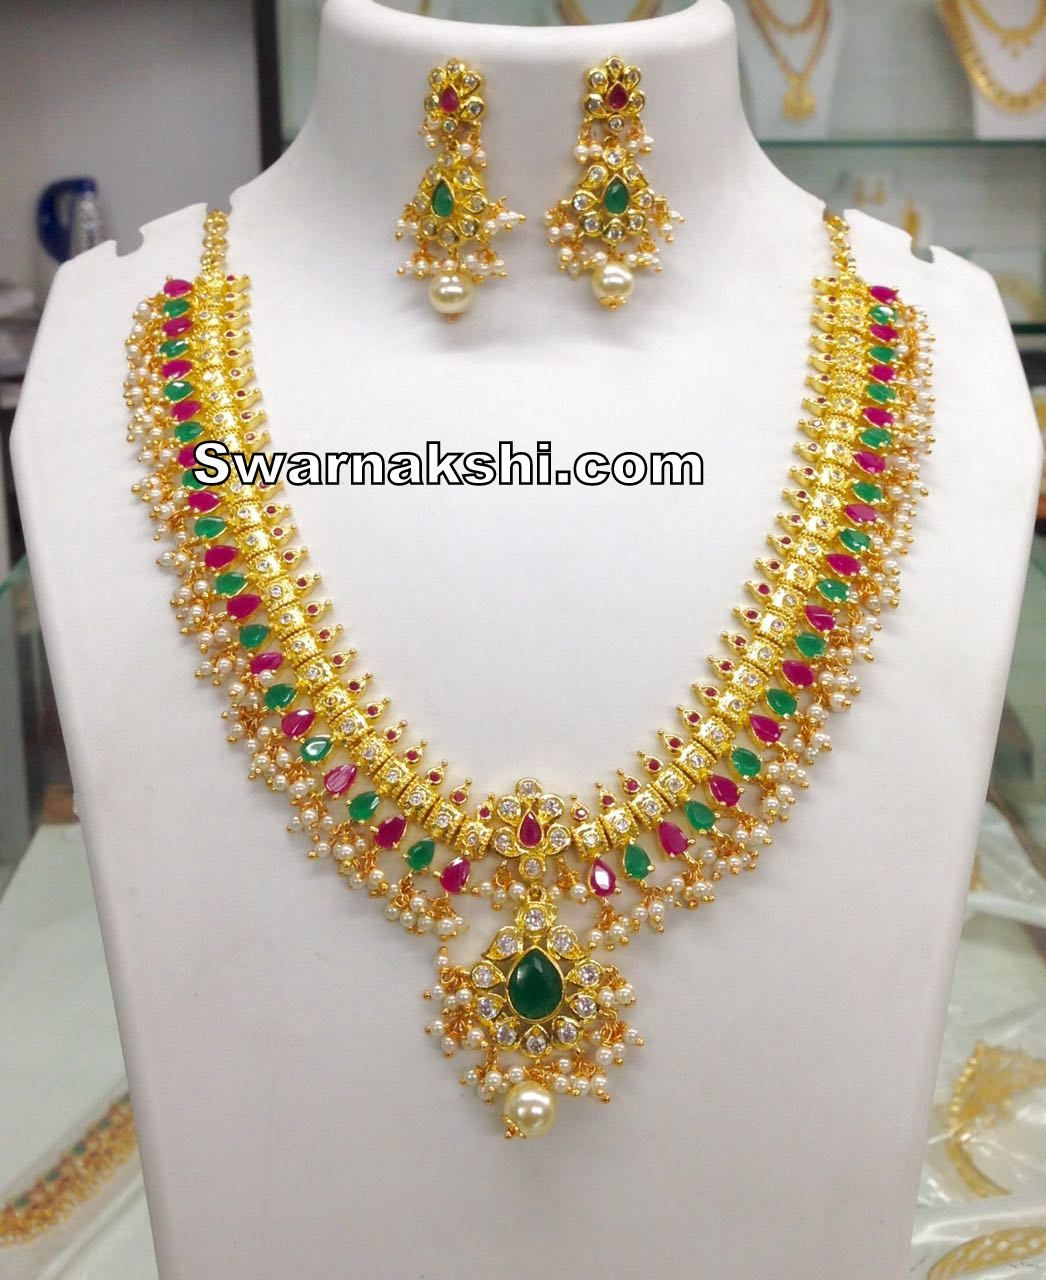 a0f467eee2 1 gram gold ruby emerald stone necklace collection #1gramgoldjewellery  #1gramgoldnecklace #necklace #imitationjewellery